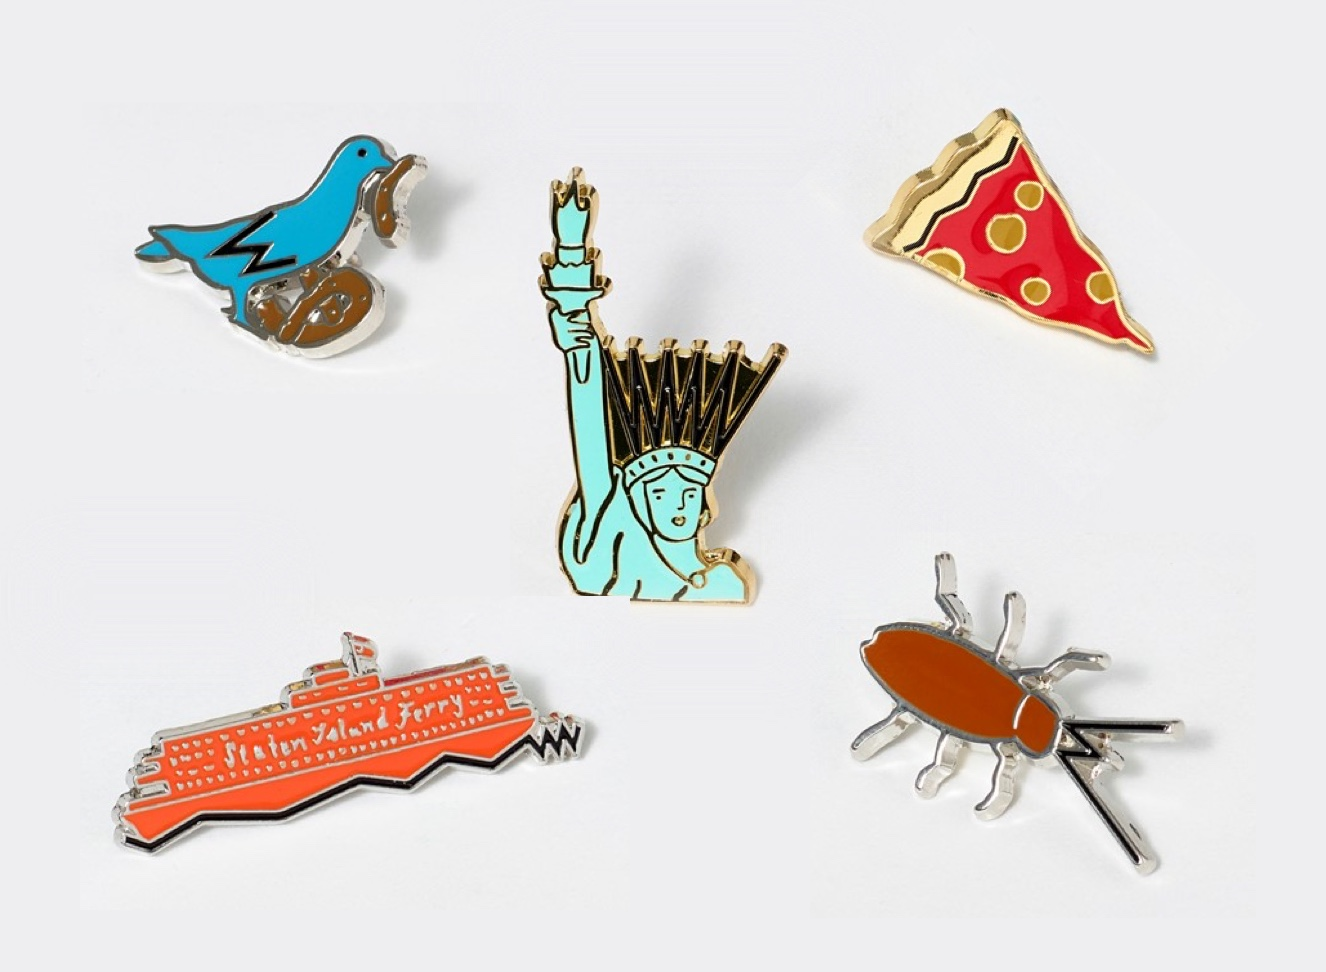 A collection of pins with hand-drawn illustrations